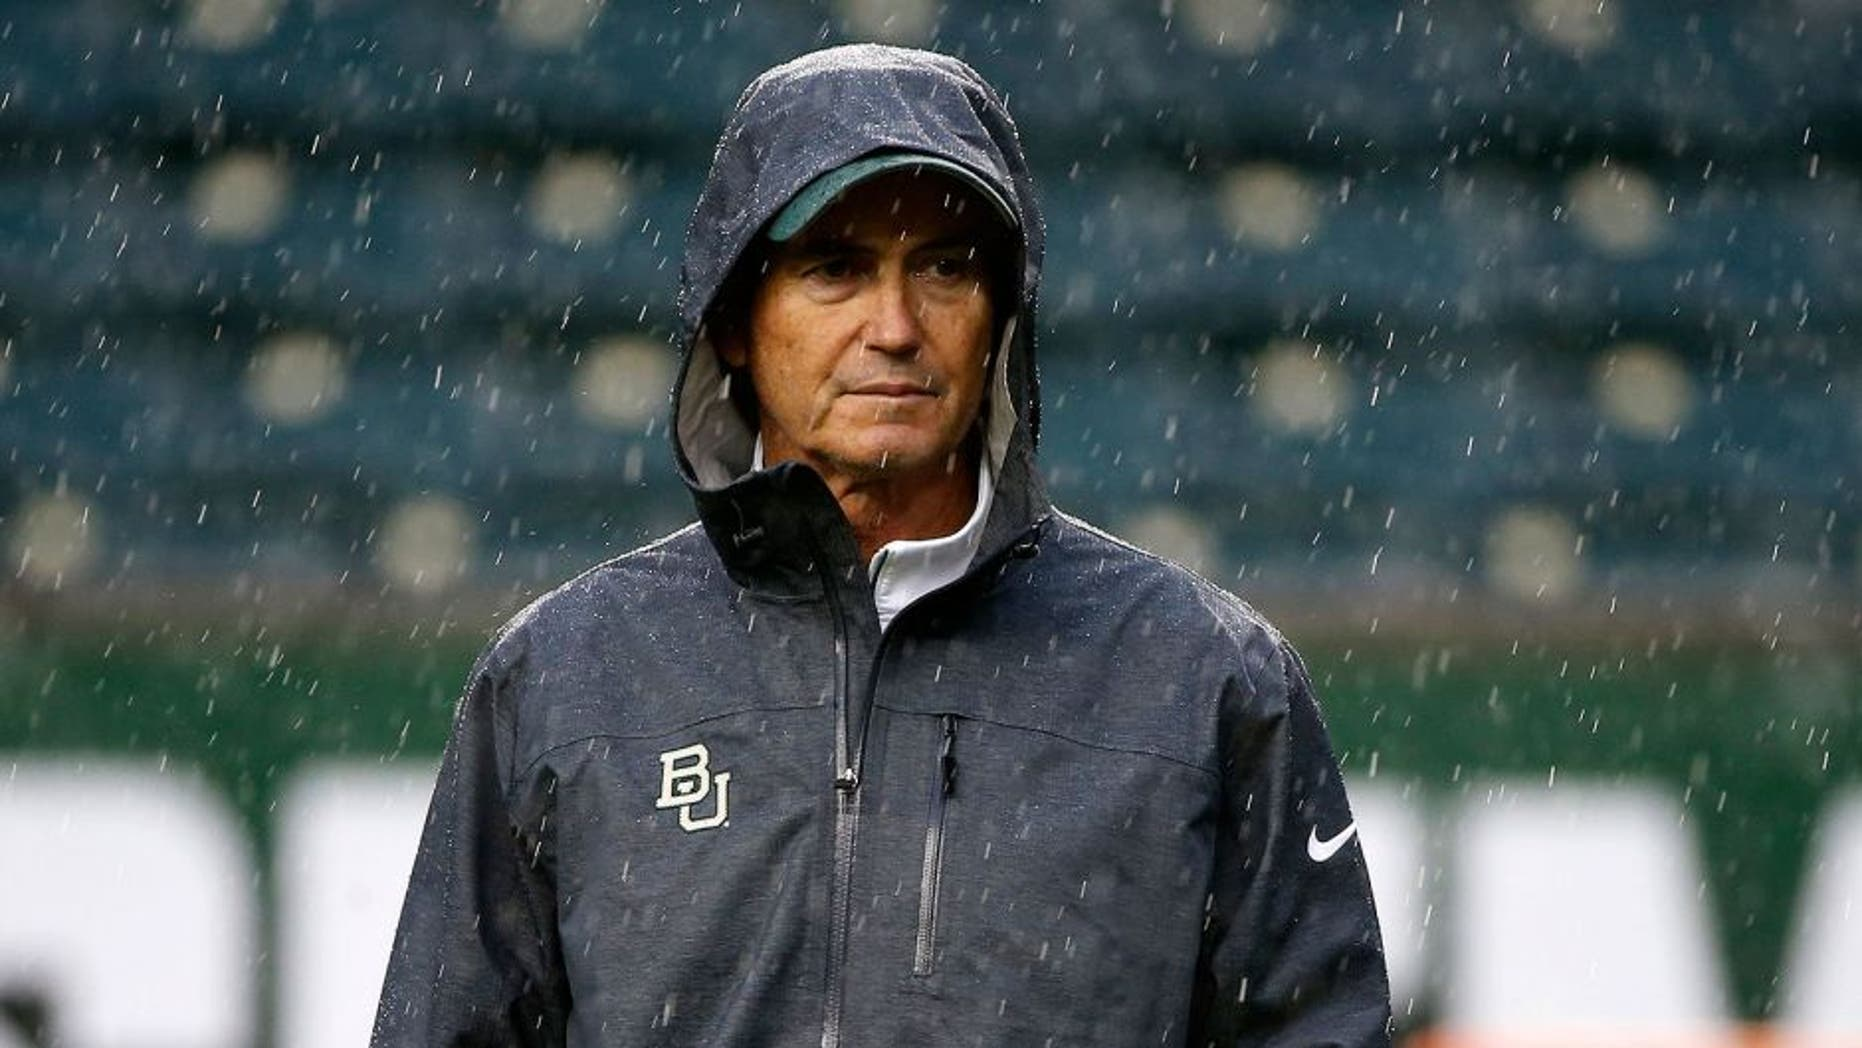 WACO, TX - OCTOBER 24: Baylor Bears head coach Art Briles watches his team before the Iowa State Cyclones take on the Baylor Bears at McLane Stadium on October 24, 2015 in Waco, Texas. (Photo by Ron Jenkins/Getty Images)